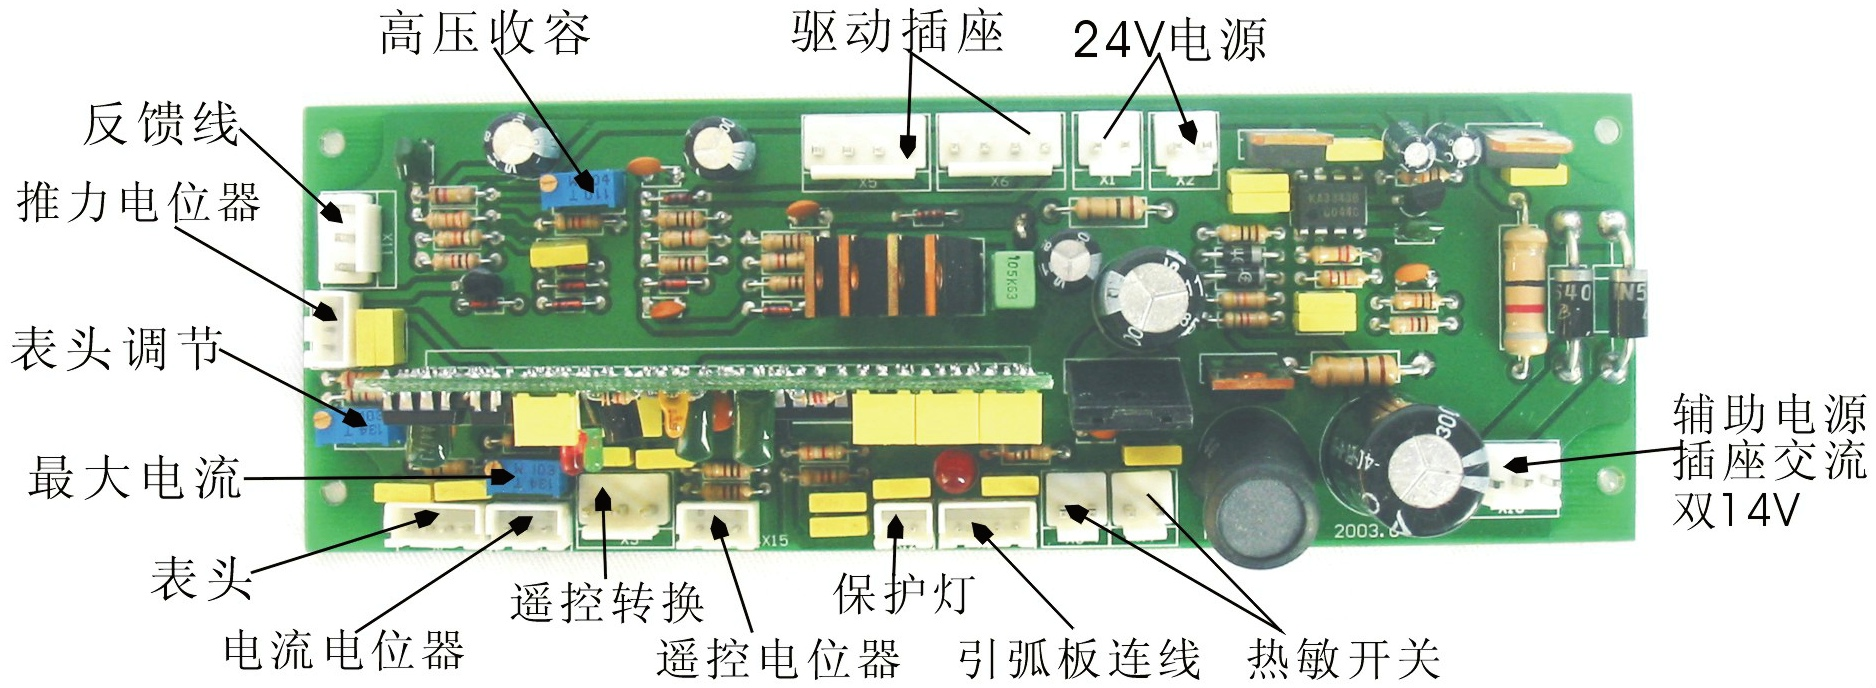 electric welding machine inverter dc manual welding parts zx7 mos rh  aliexpress com Inverter Oscillator Circuit 5000W Inverter Circuit Diagram